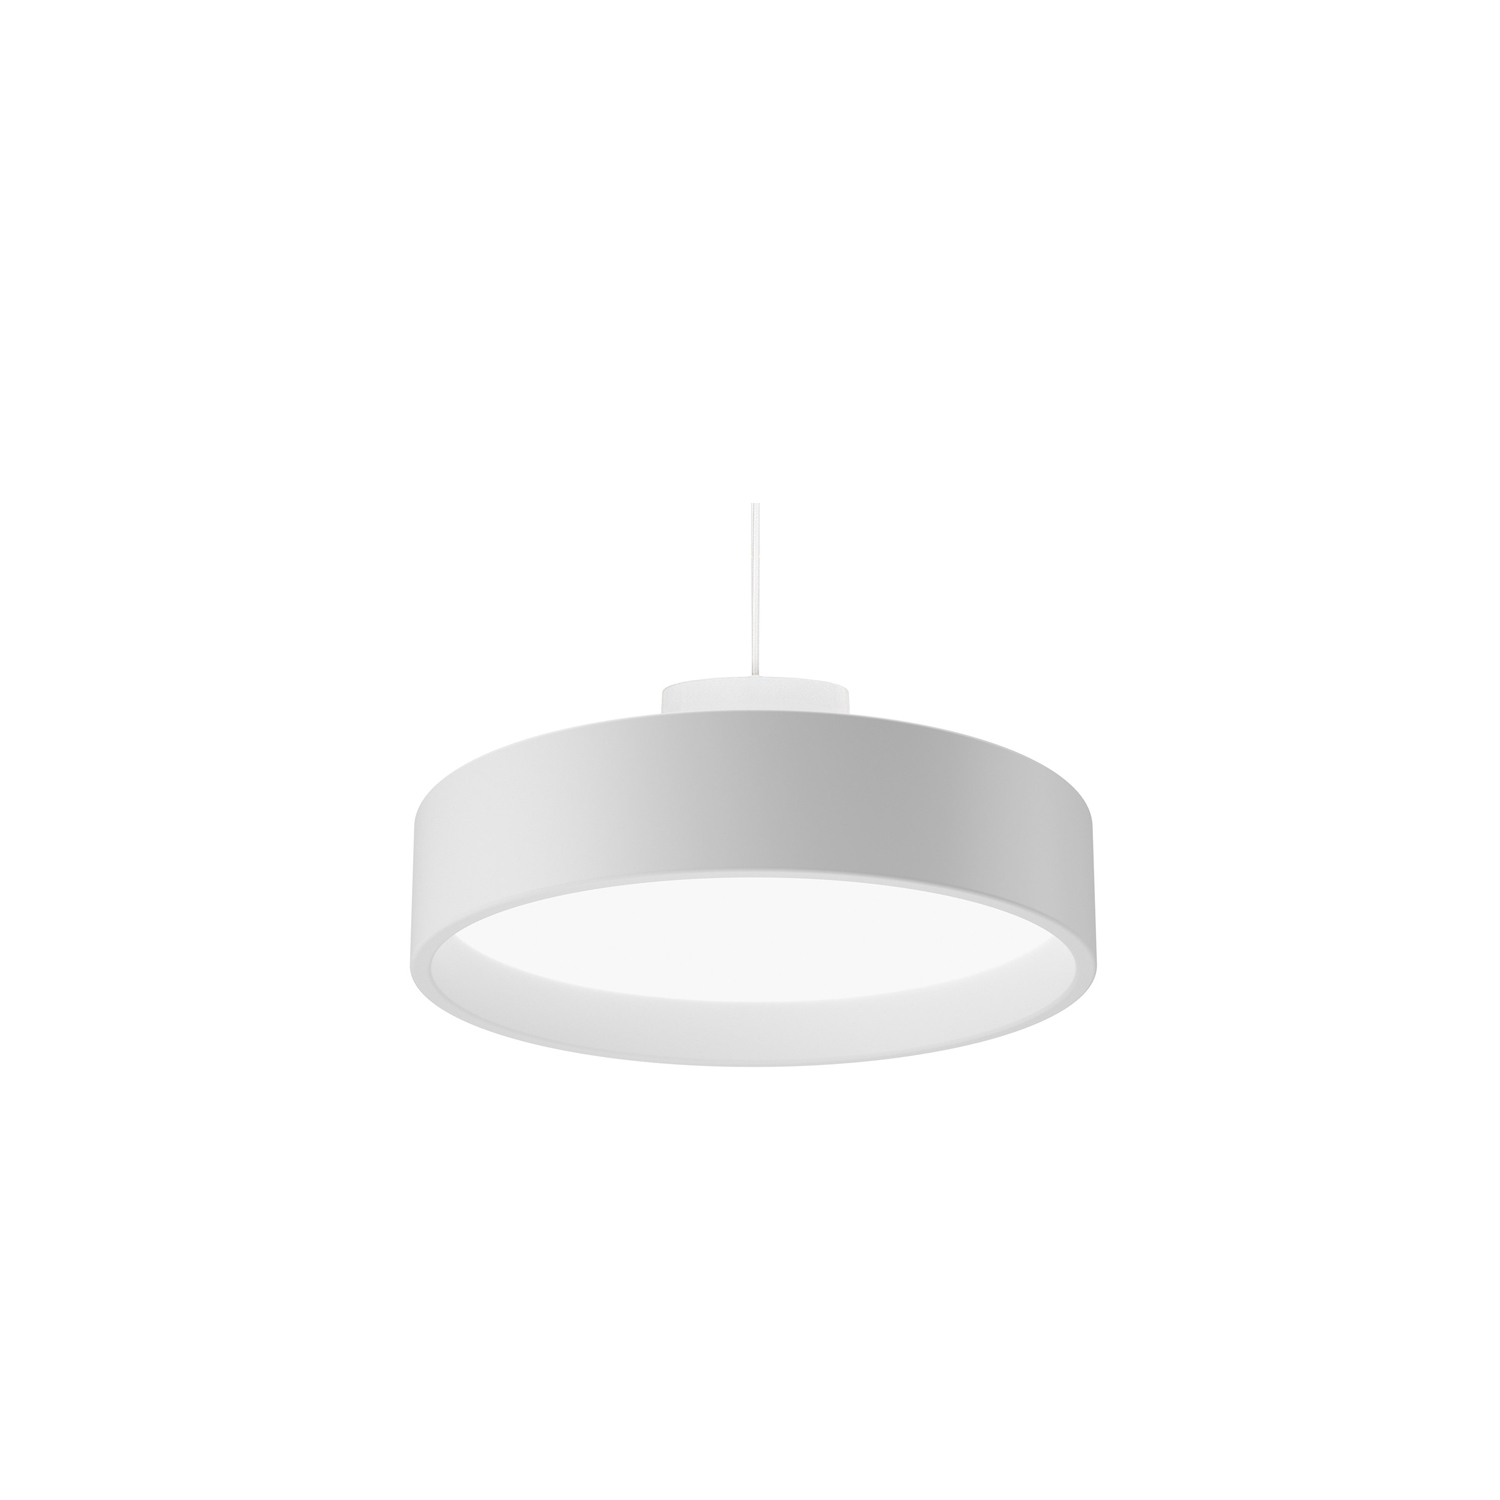 LP Circle Pendant Light - The fixture emits diffuse light via a high-efficiency acrylic diffuser. The diffuser, which is encircled by a voluminous coloured or white ring, is hidden when viewed from low angles. Angling the inner side of the ring 5° creates a comfortable and decorative graduation of the light from the diffuser. Perforated body discreetly illuminates the other components of the fixture. | Matter of Stuff